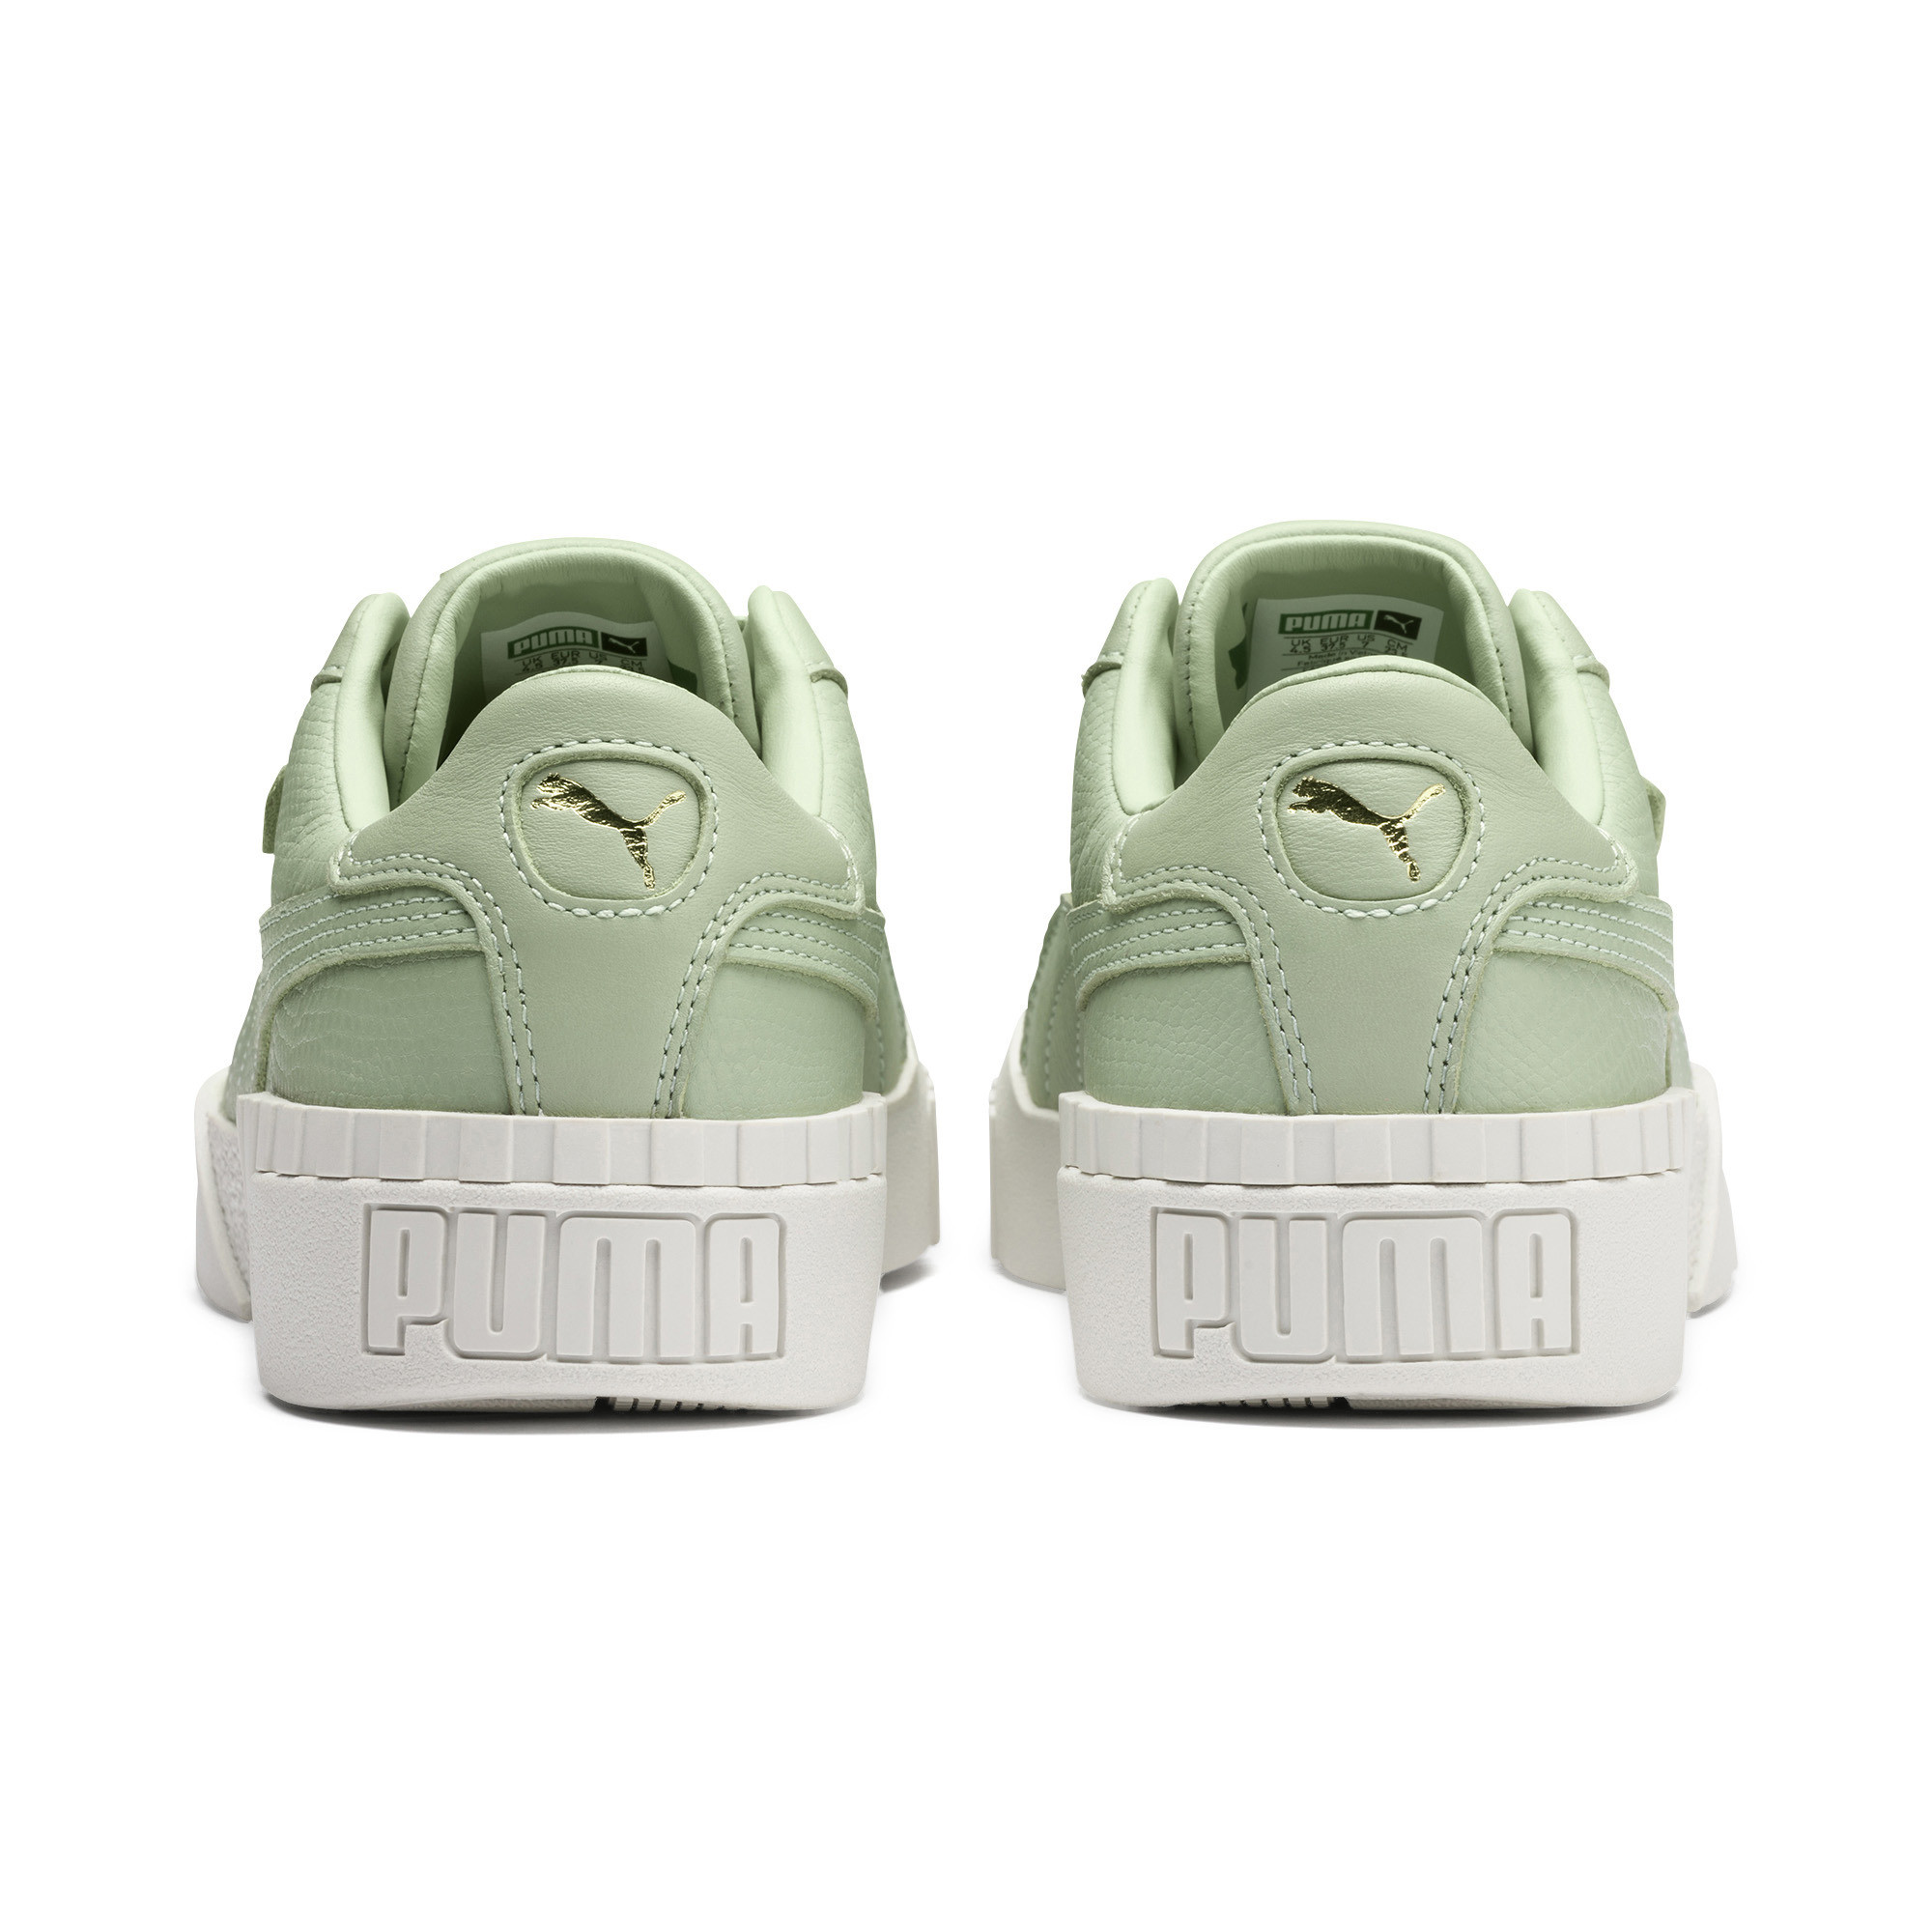 PUMA-Cali-Emboss-Women-039-s-Sneakers-Women-Shoe-Evolution thumbnail 3